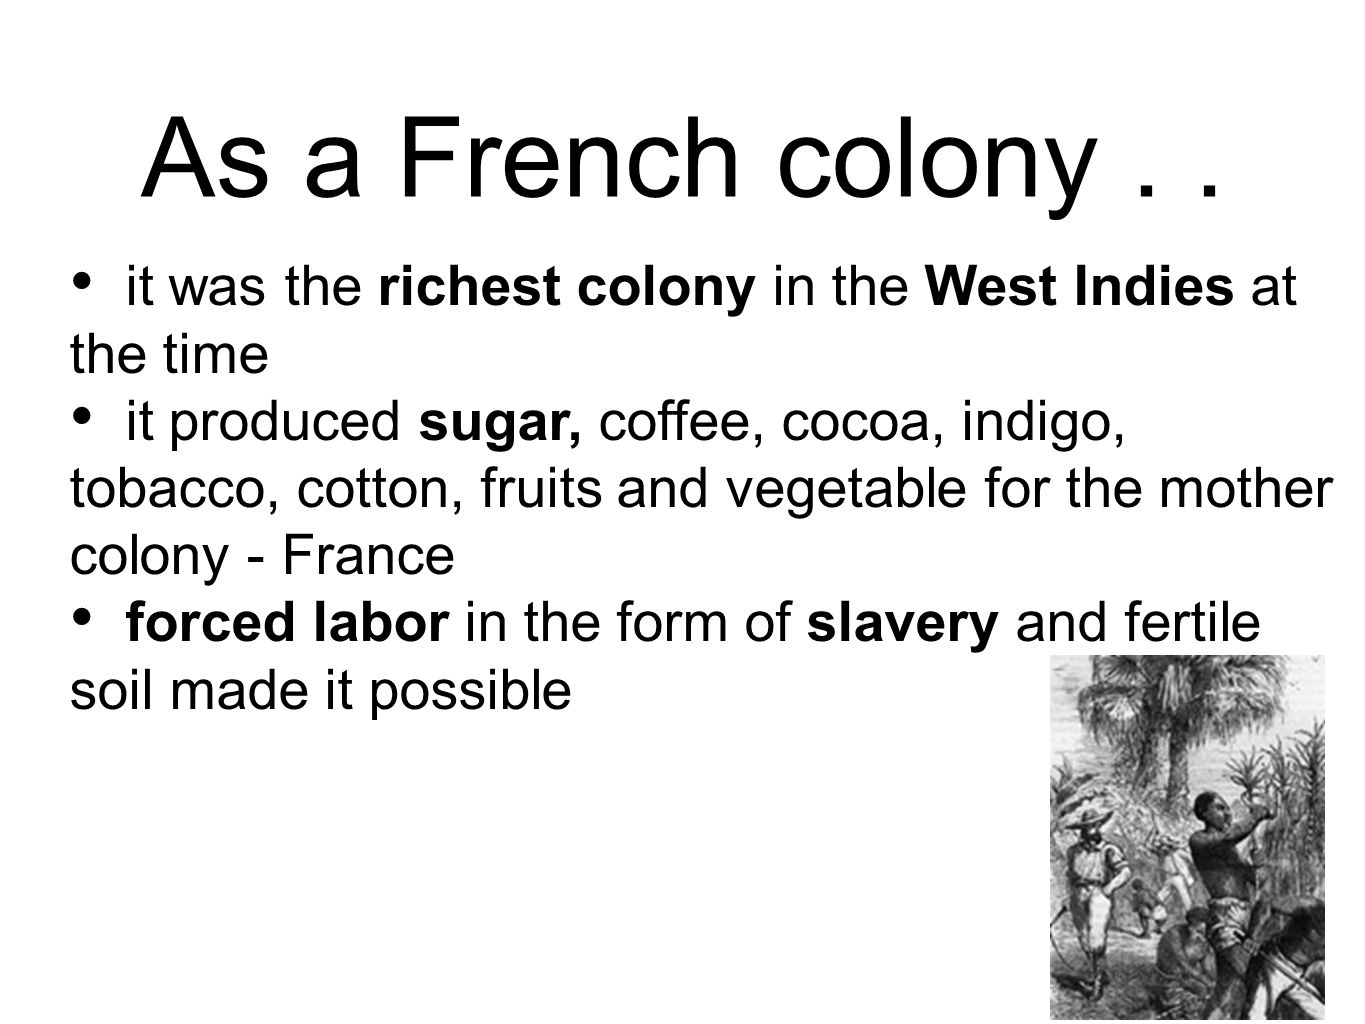 As a French colony..